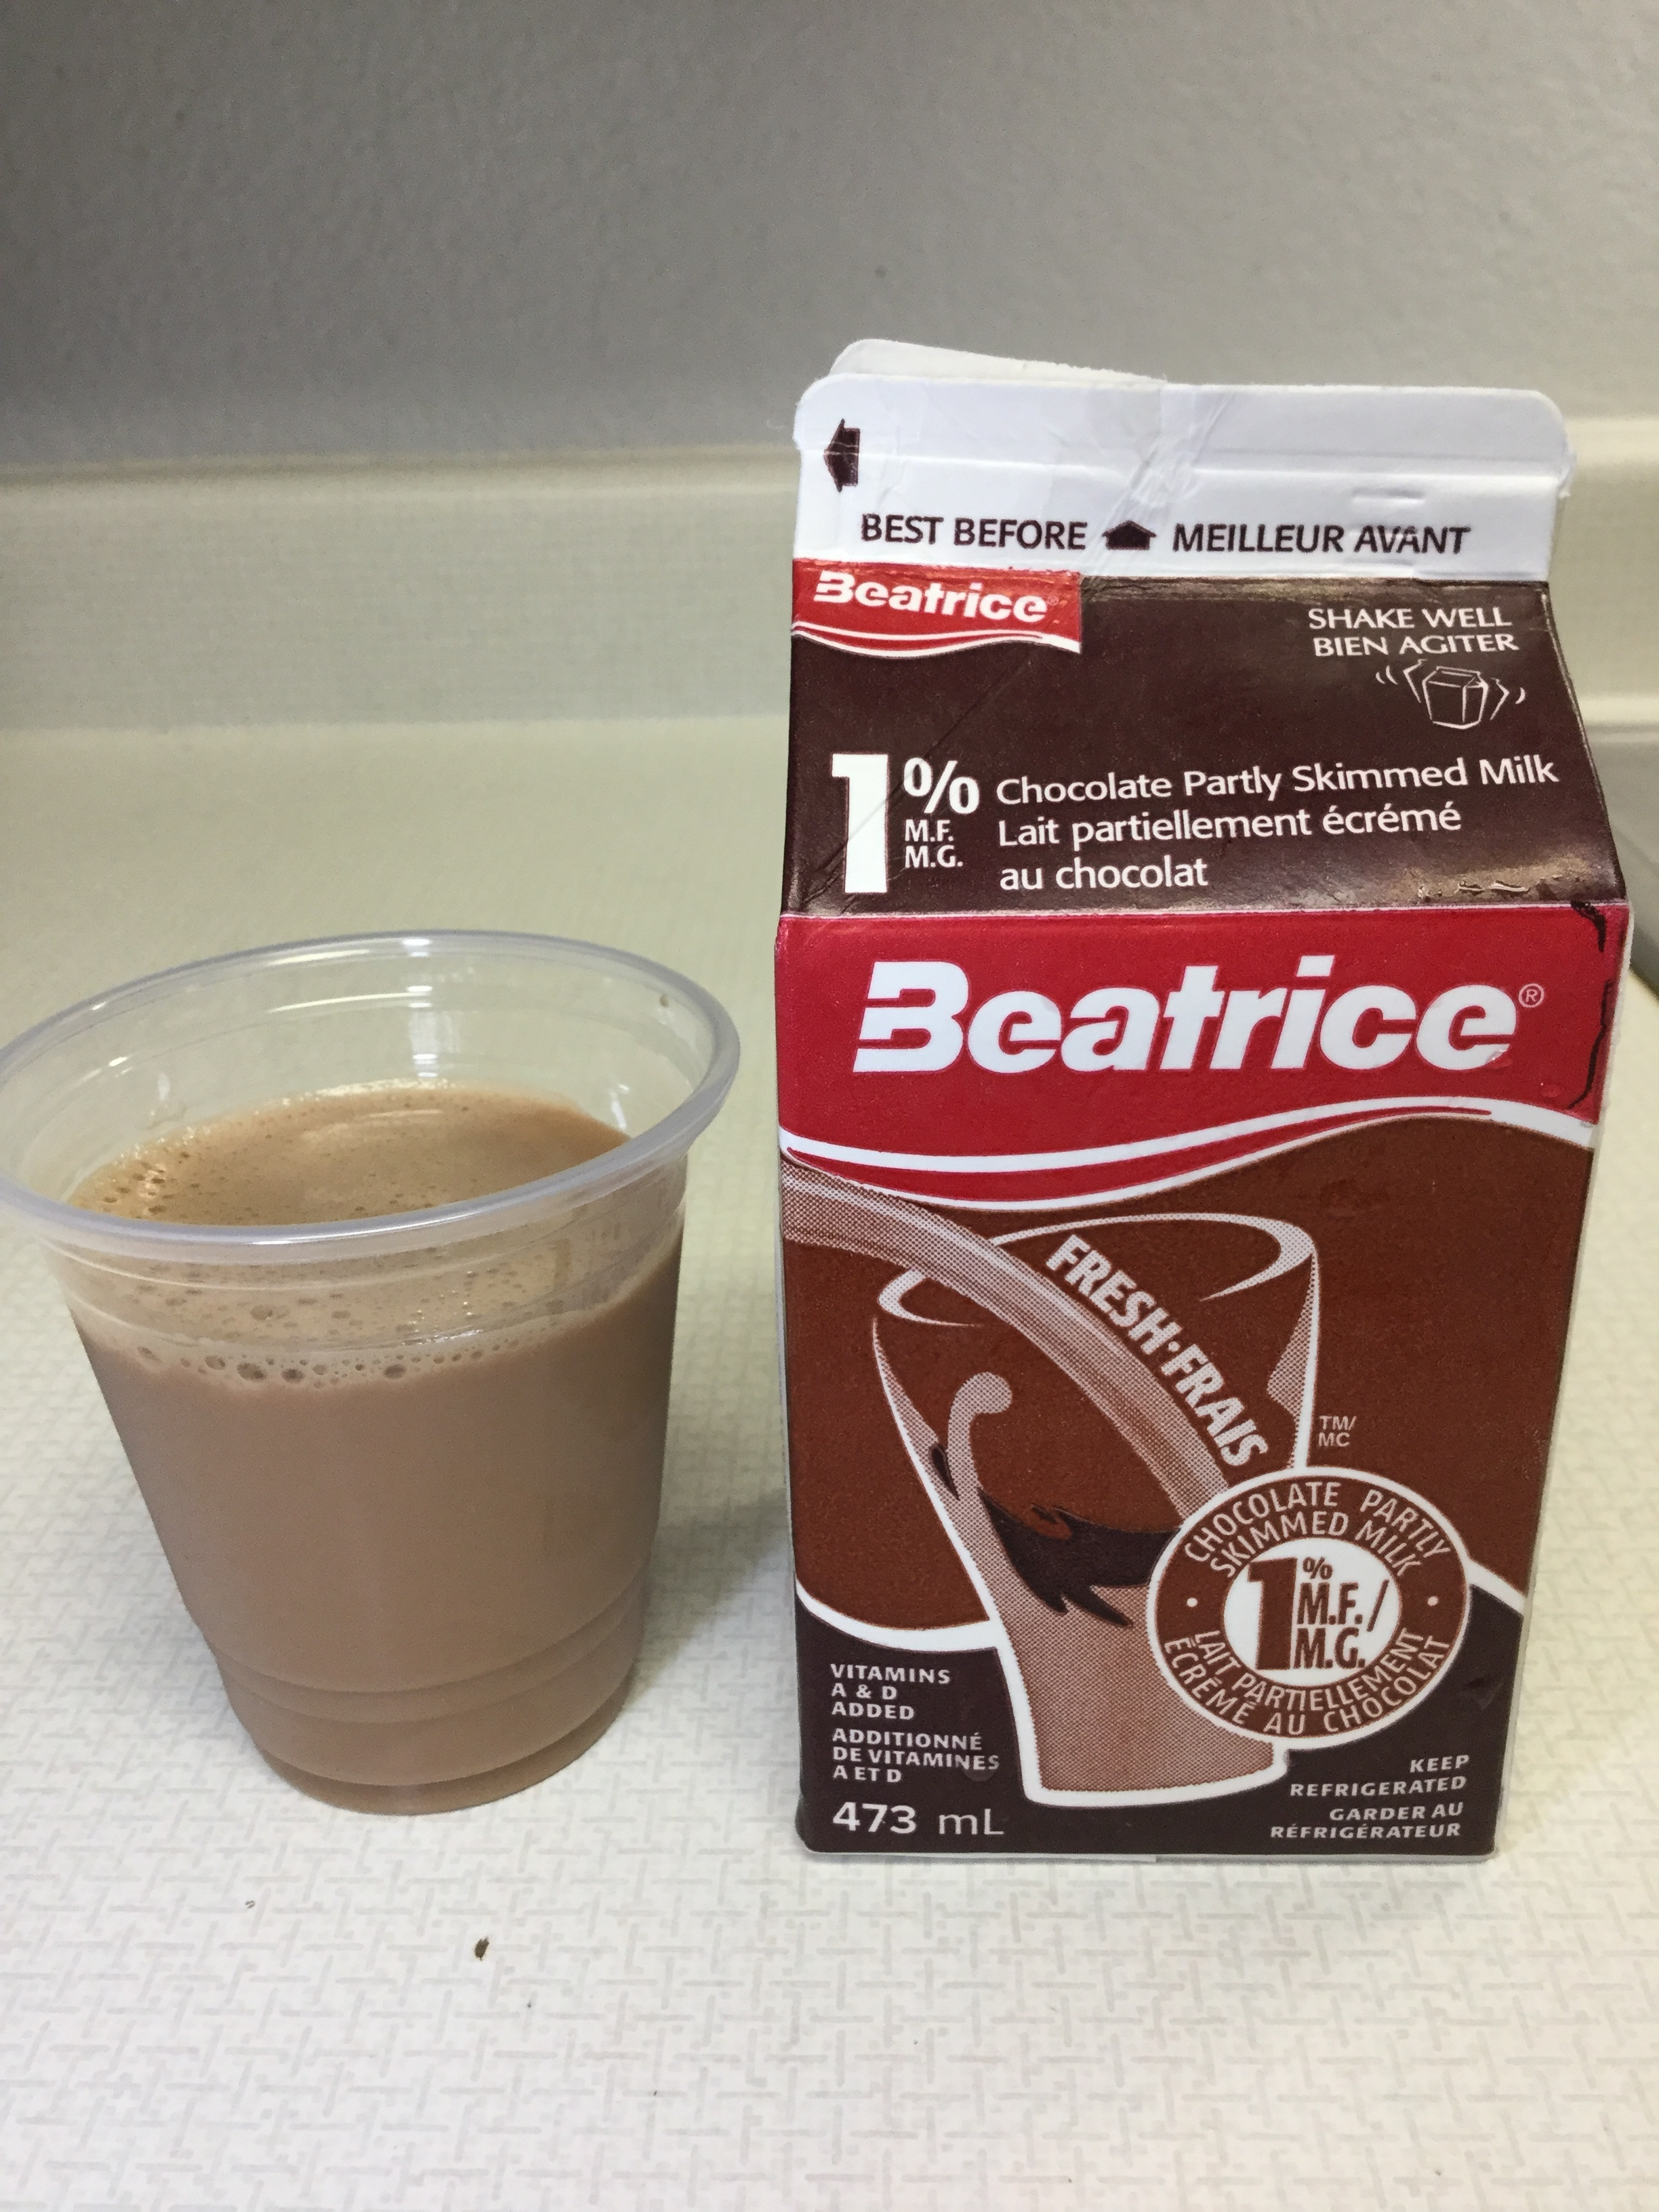 Beatrice Chocolate Partly Skimmed Milk Cup